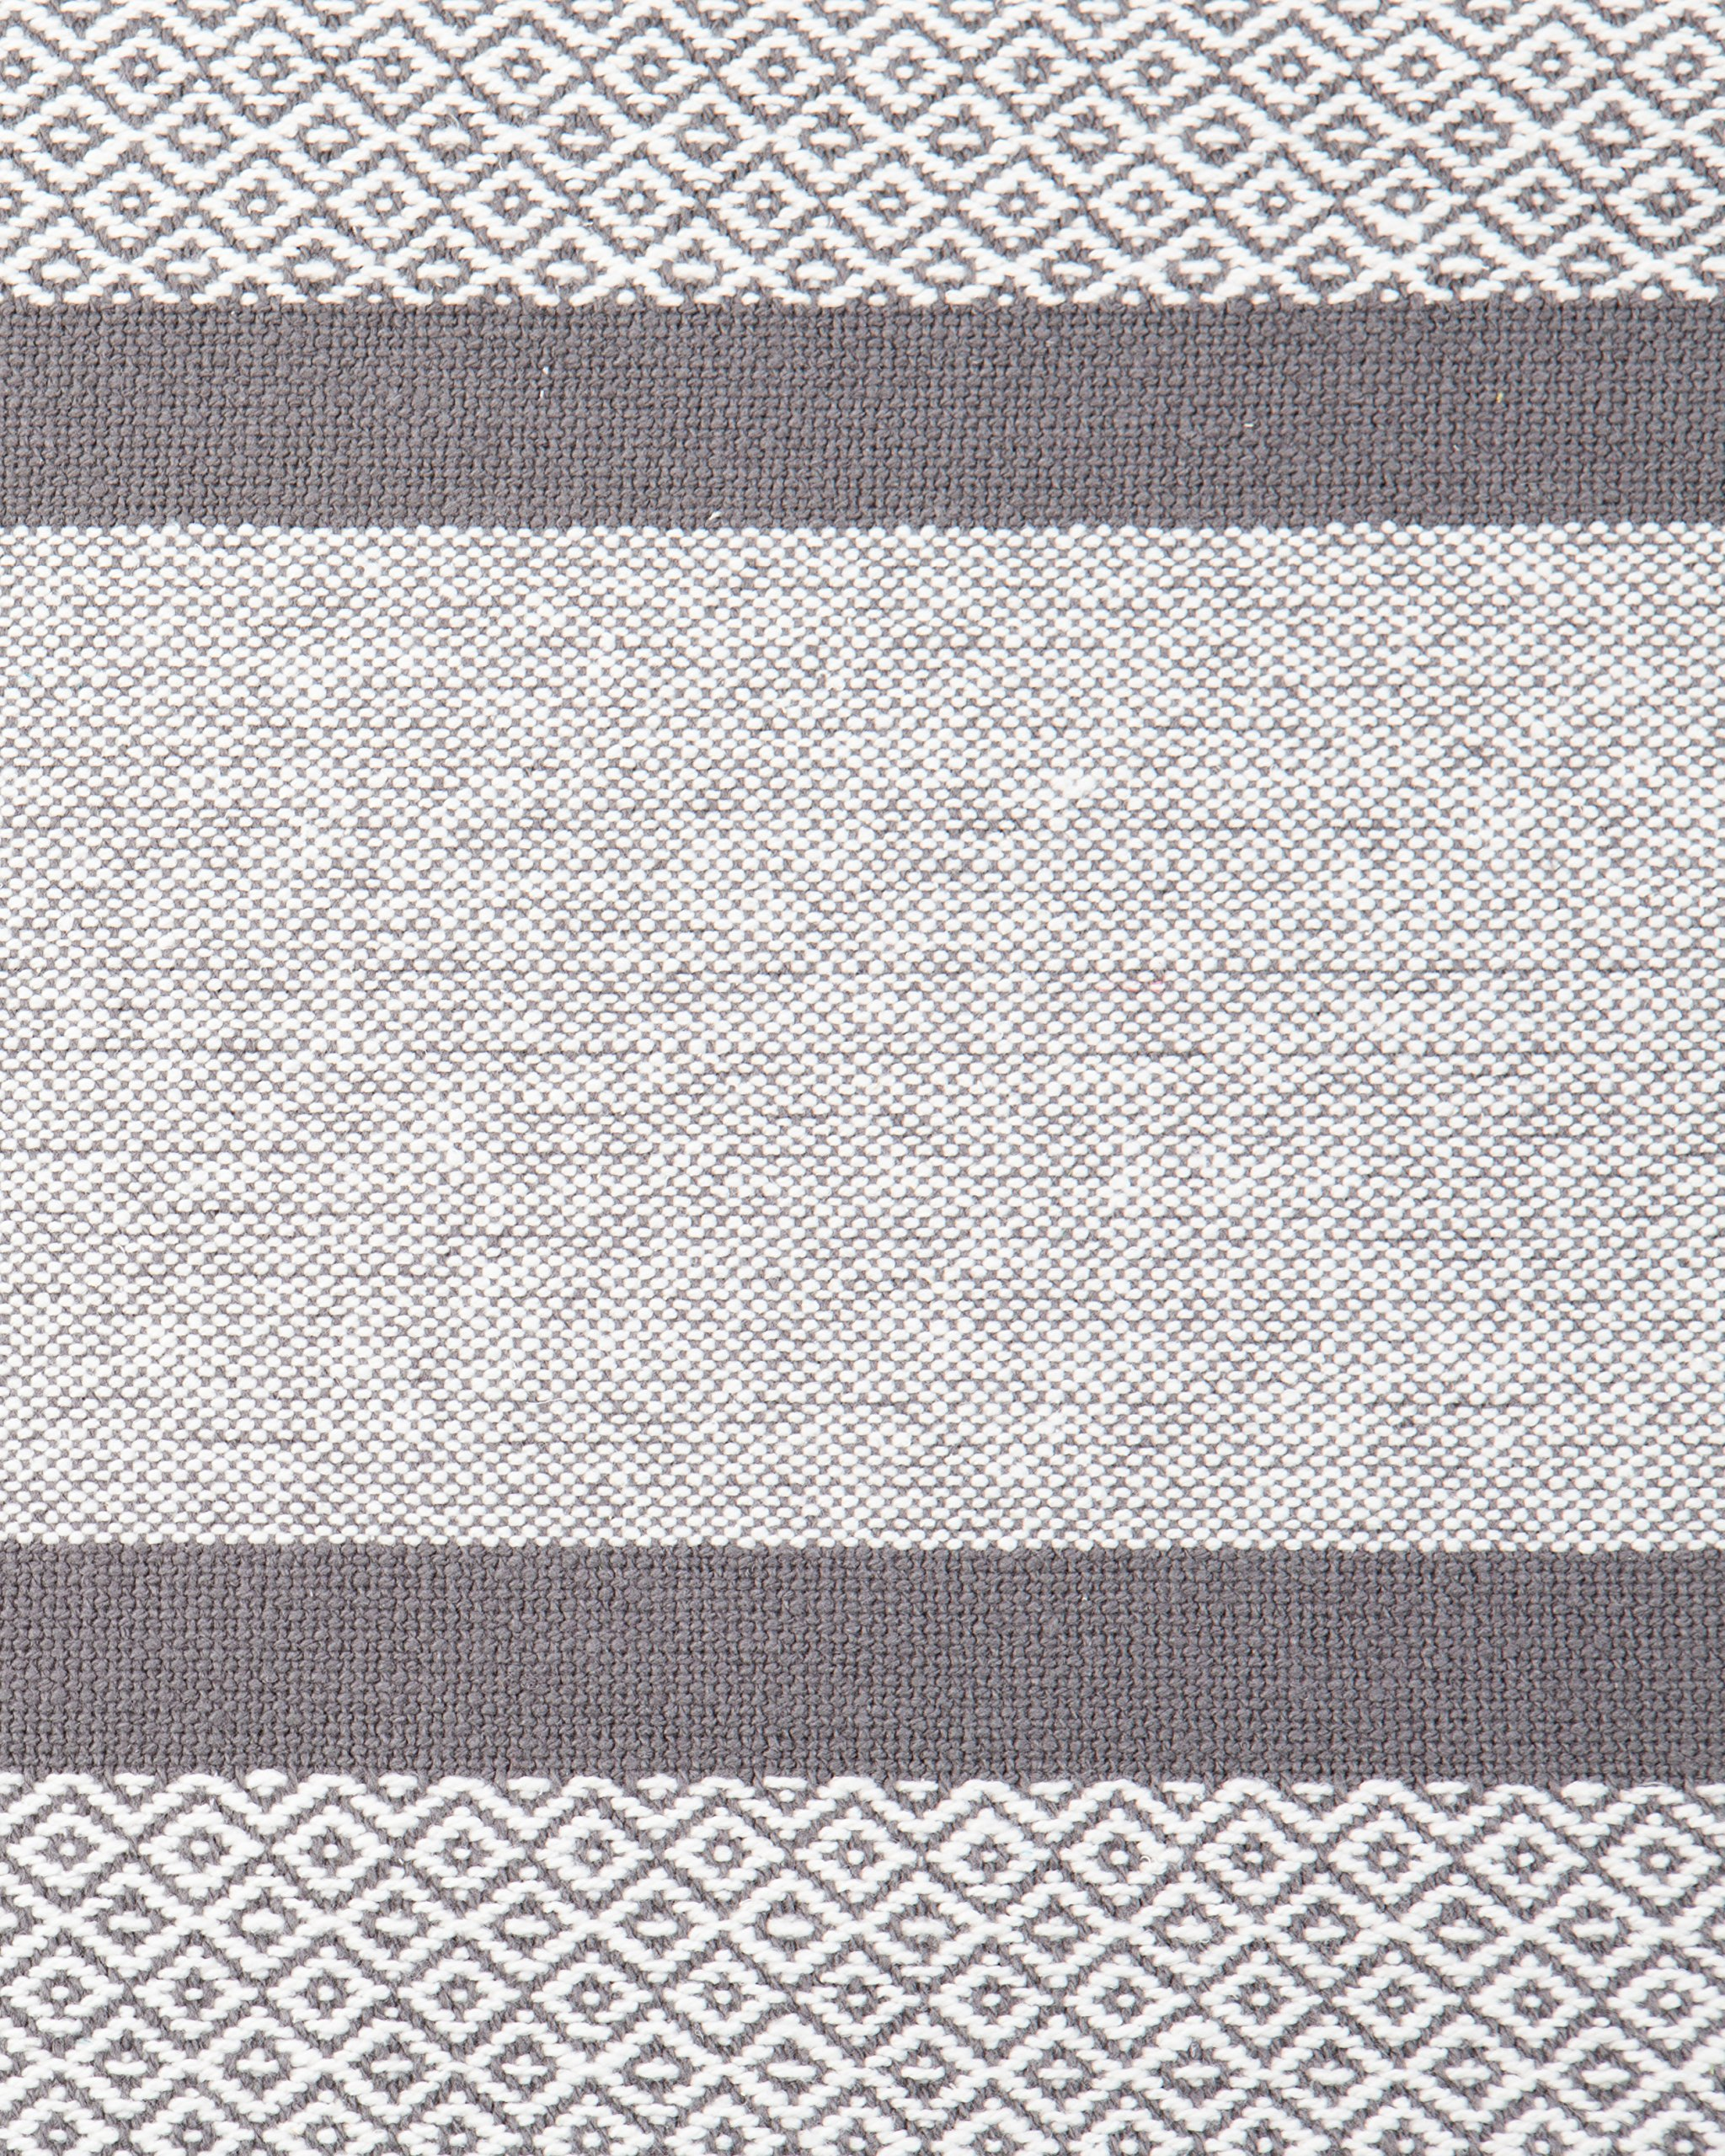 Sticky Toffee Cotton Woven Table Runner with Fringe, Traditional Diamond, Gray, 14 in x 72 in by Sticky Toffee (Image #2)